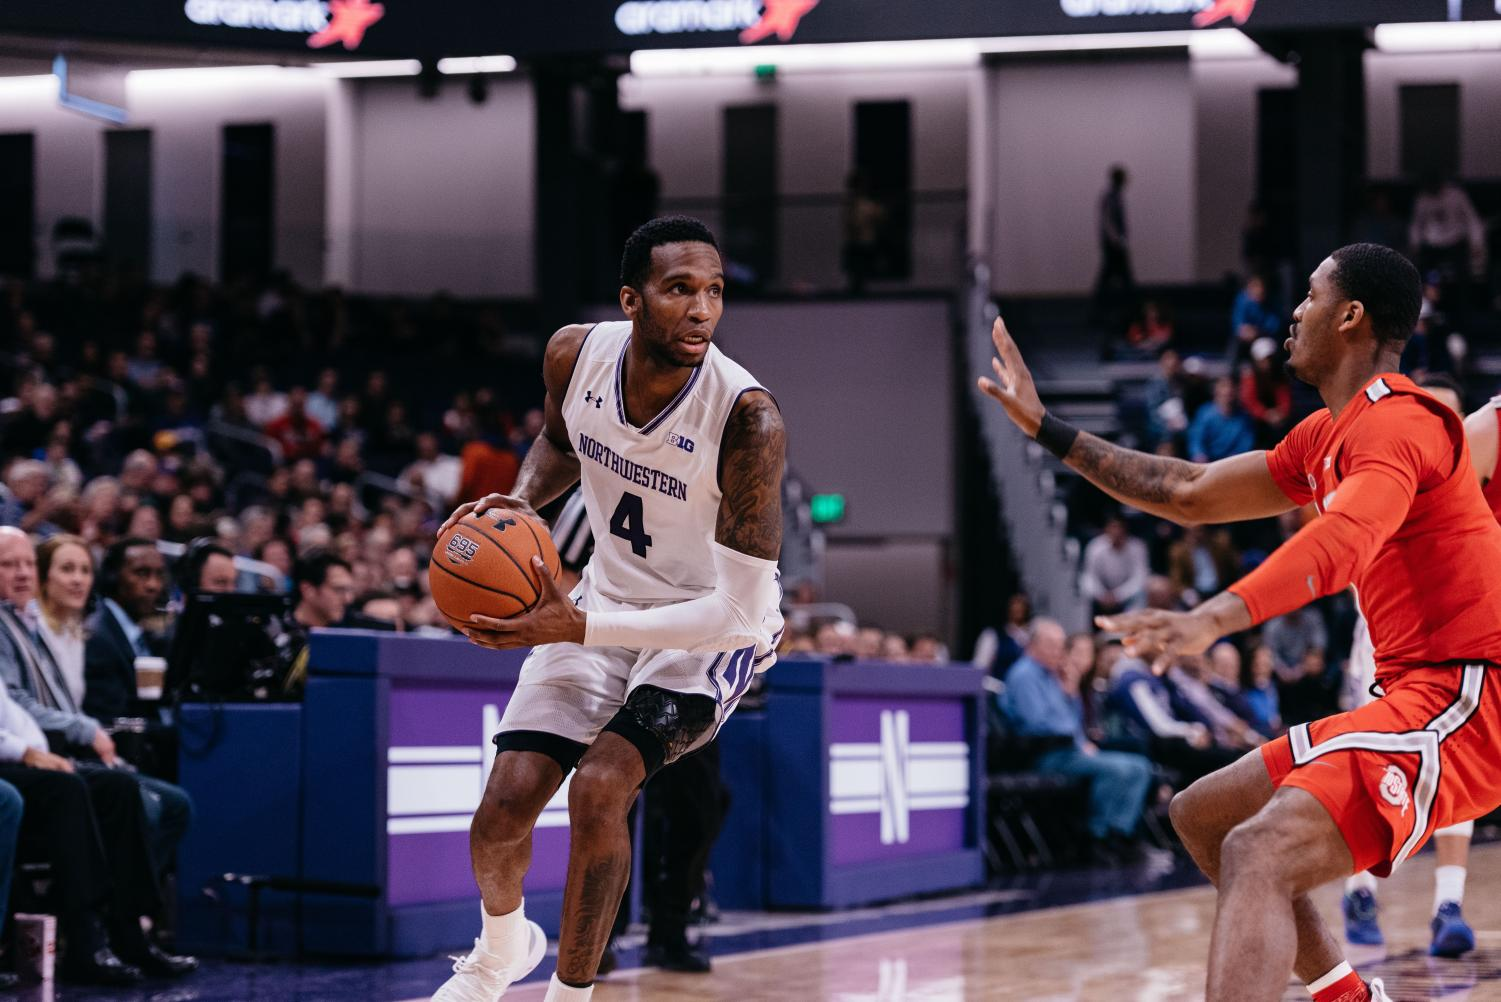 Vic Law sizes up a defender. The Northwestern graduate signed a two-pay contract with the Orlando Magic on Saturday.